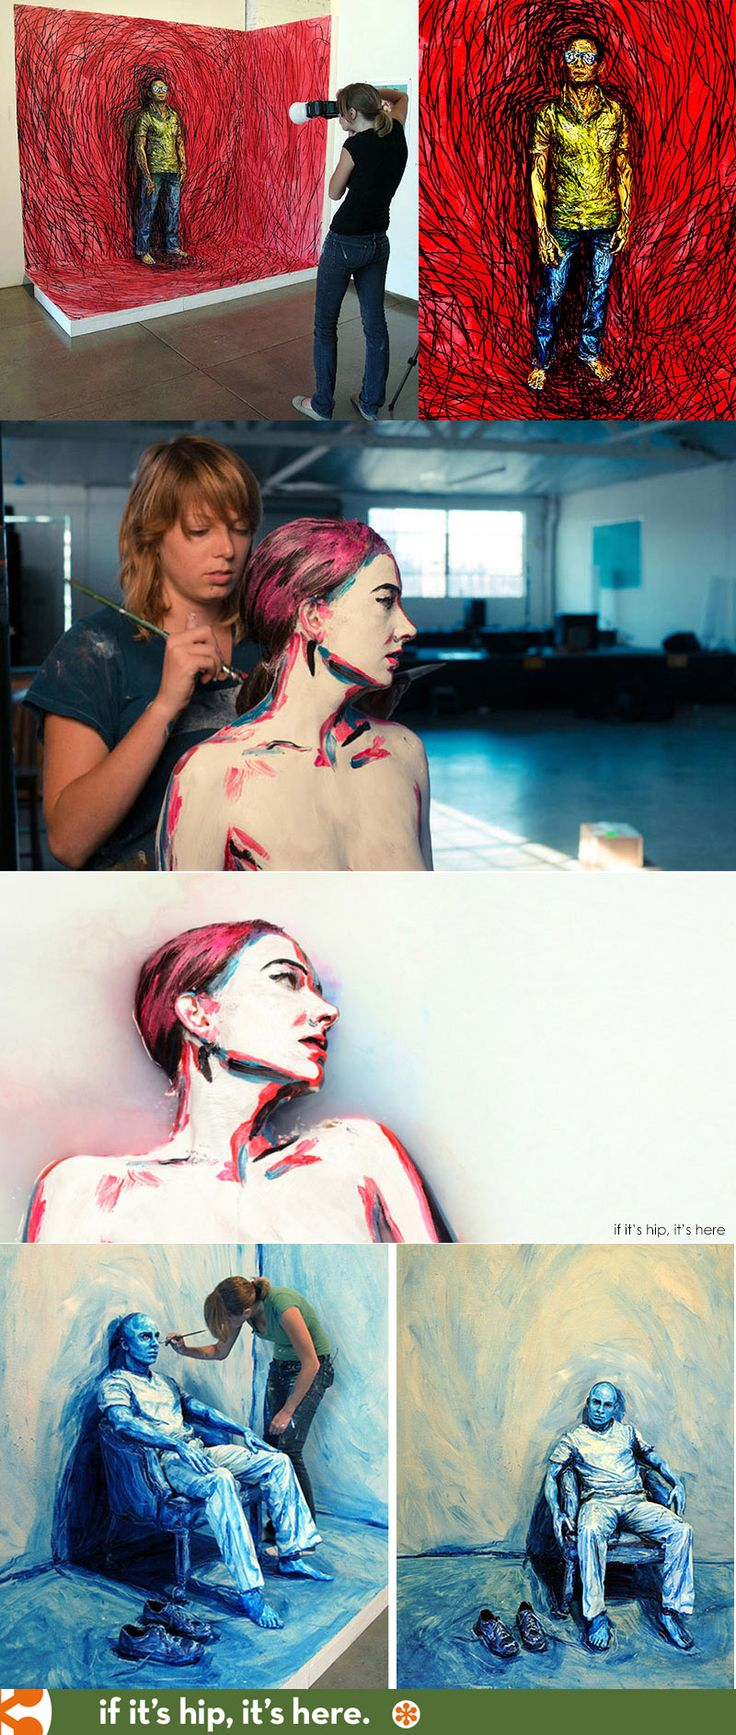 Artist Alexa Meade turns 3D into 2D by applying paint directly on her subjects instead of on a canvas. More at http://www.ifitshipitshere.com/body-canvas-artist-alexa-meade-shares-process-work/